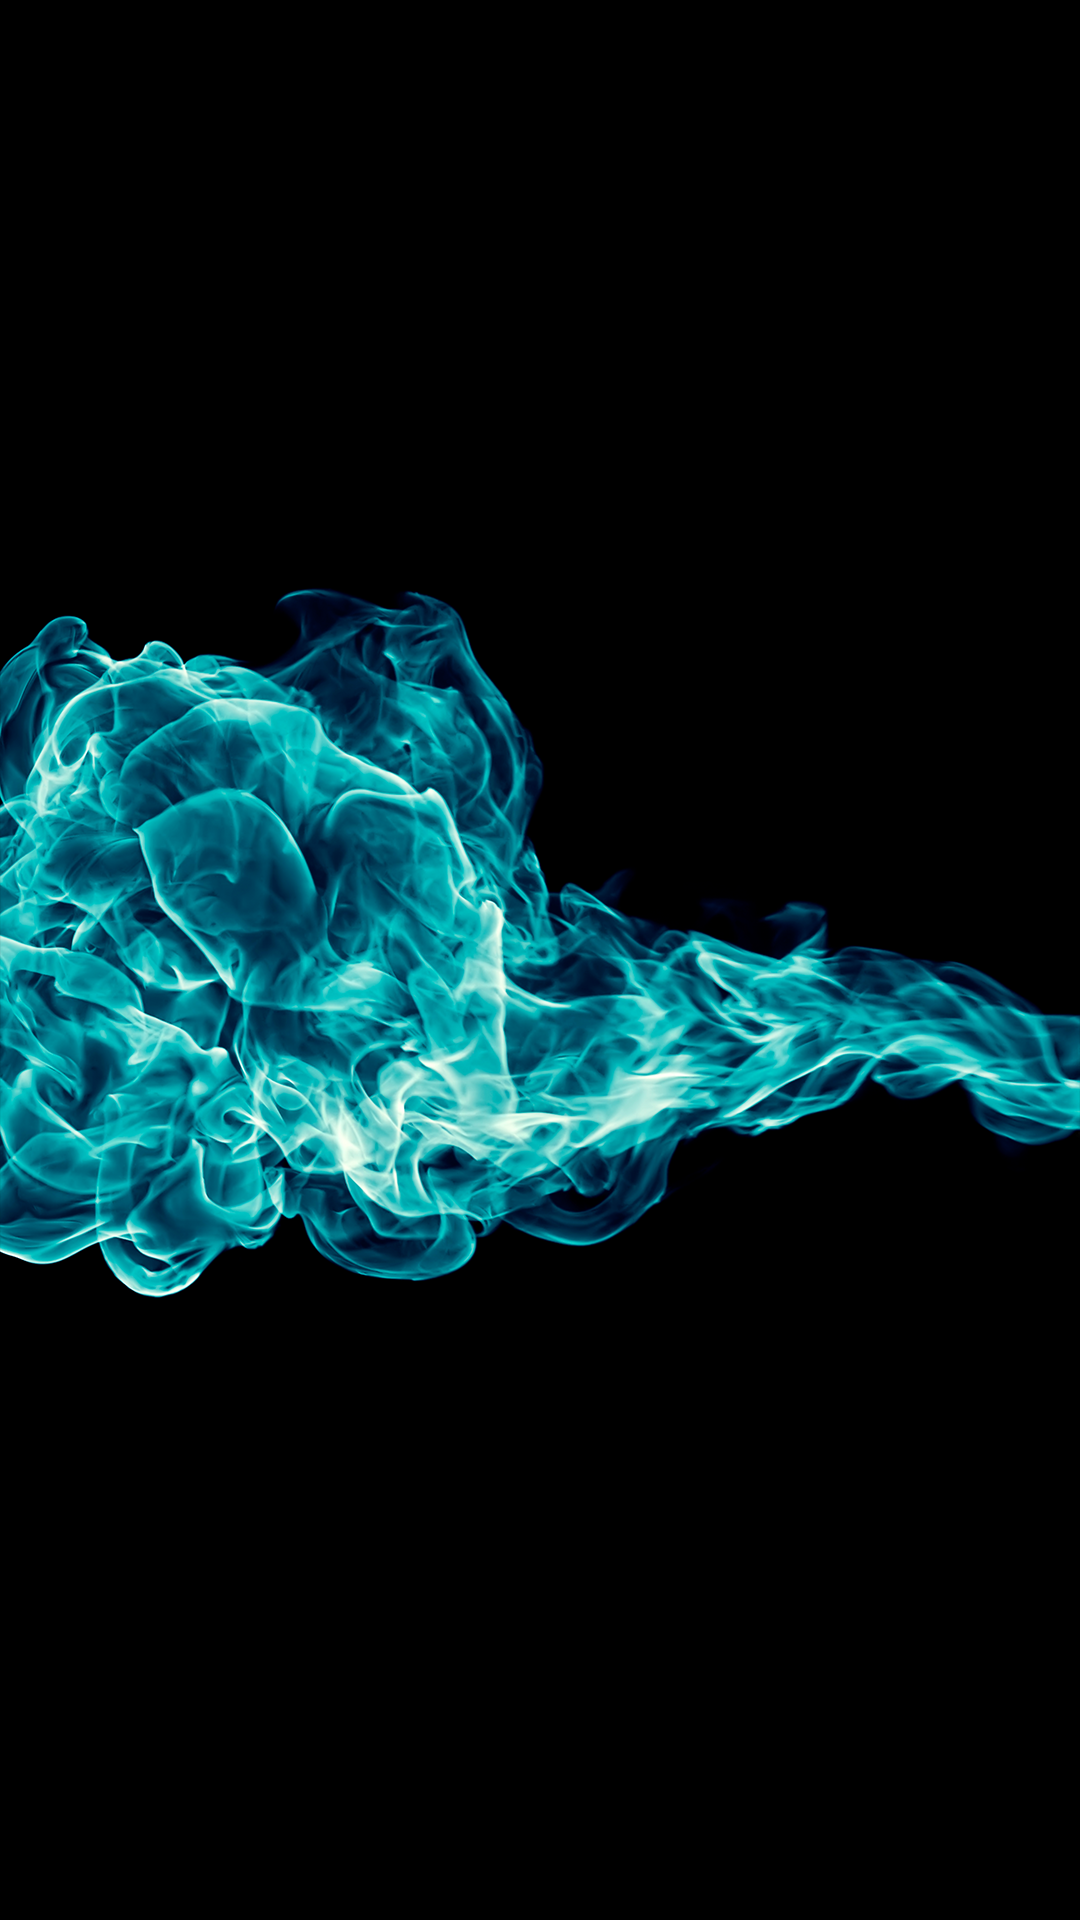 Ultra Hd Blue Fire Wallpaper For Your Mobile Phone 0042